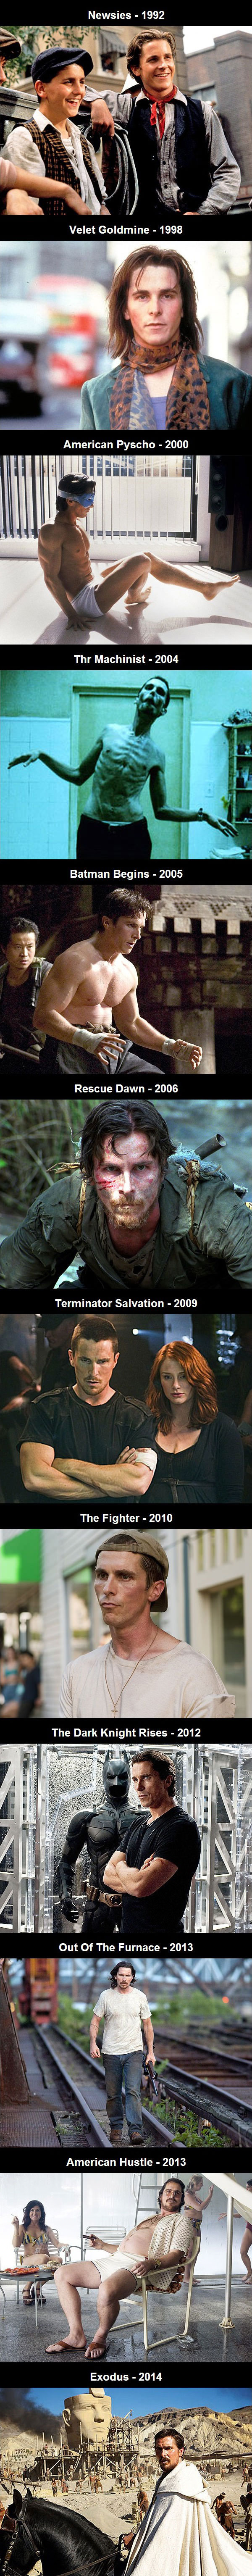 the evolution of christian bale throughout the years as seen in various movies